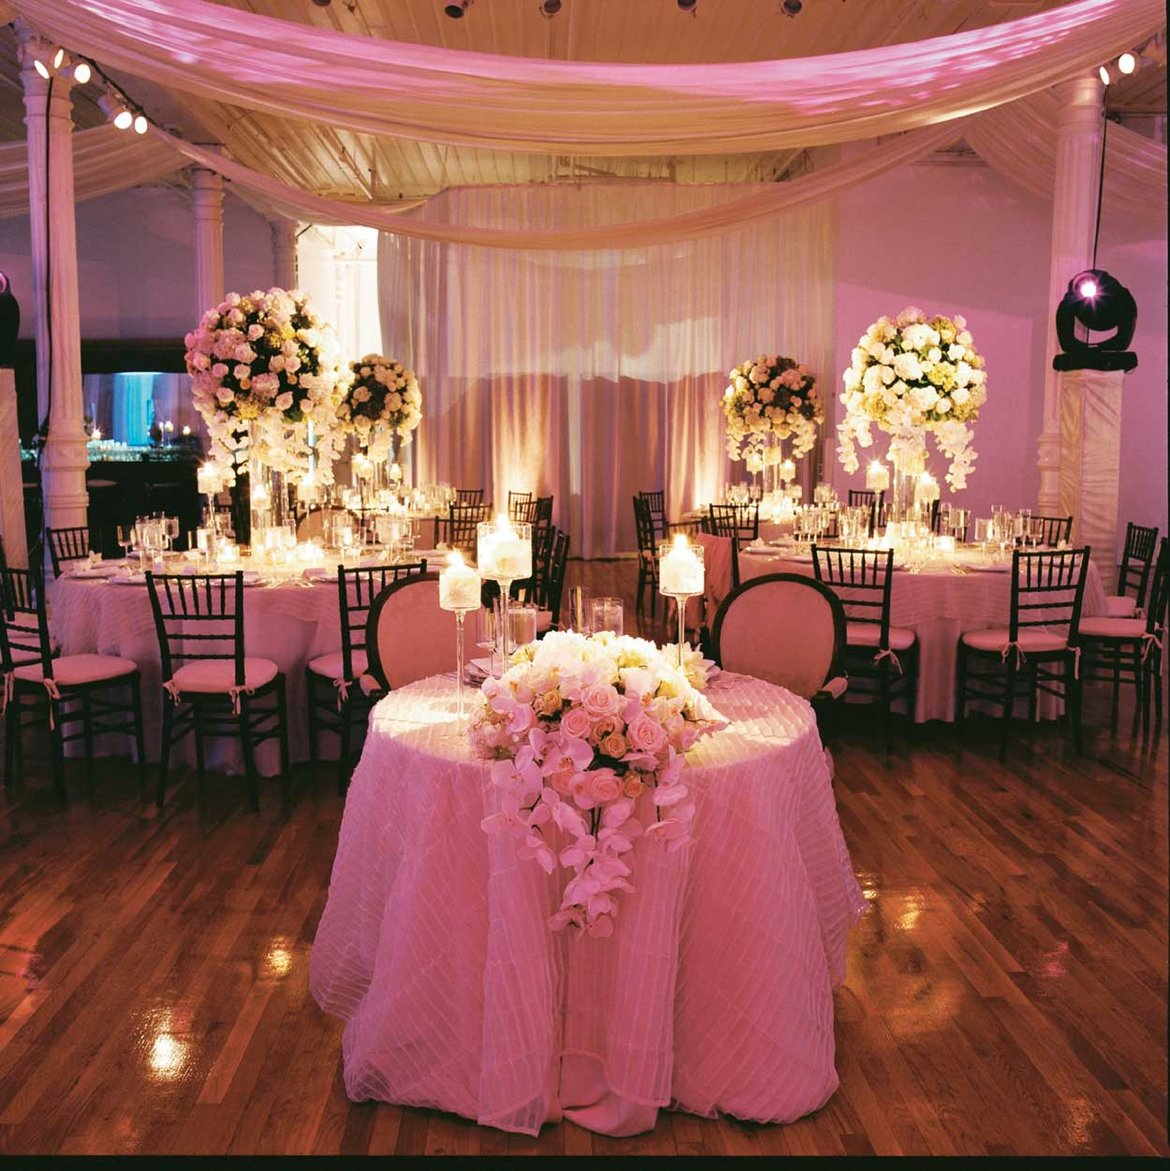 Reception Seating for the Bride and Groom, Sweetheart Table, Fred Marcus Photography